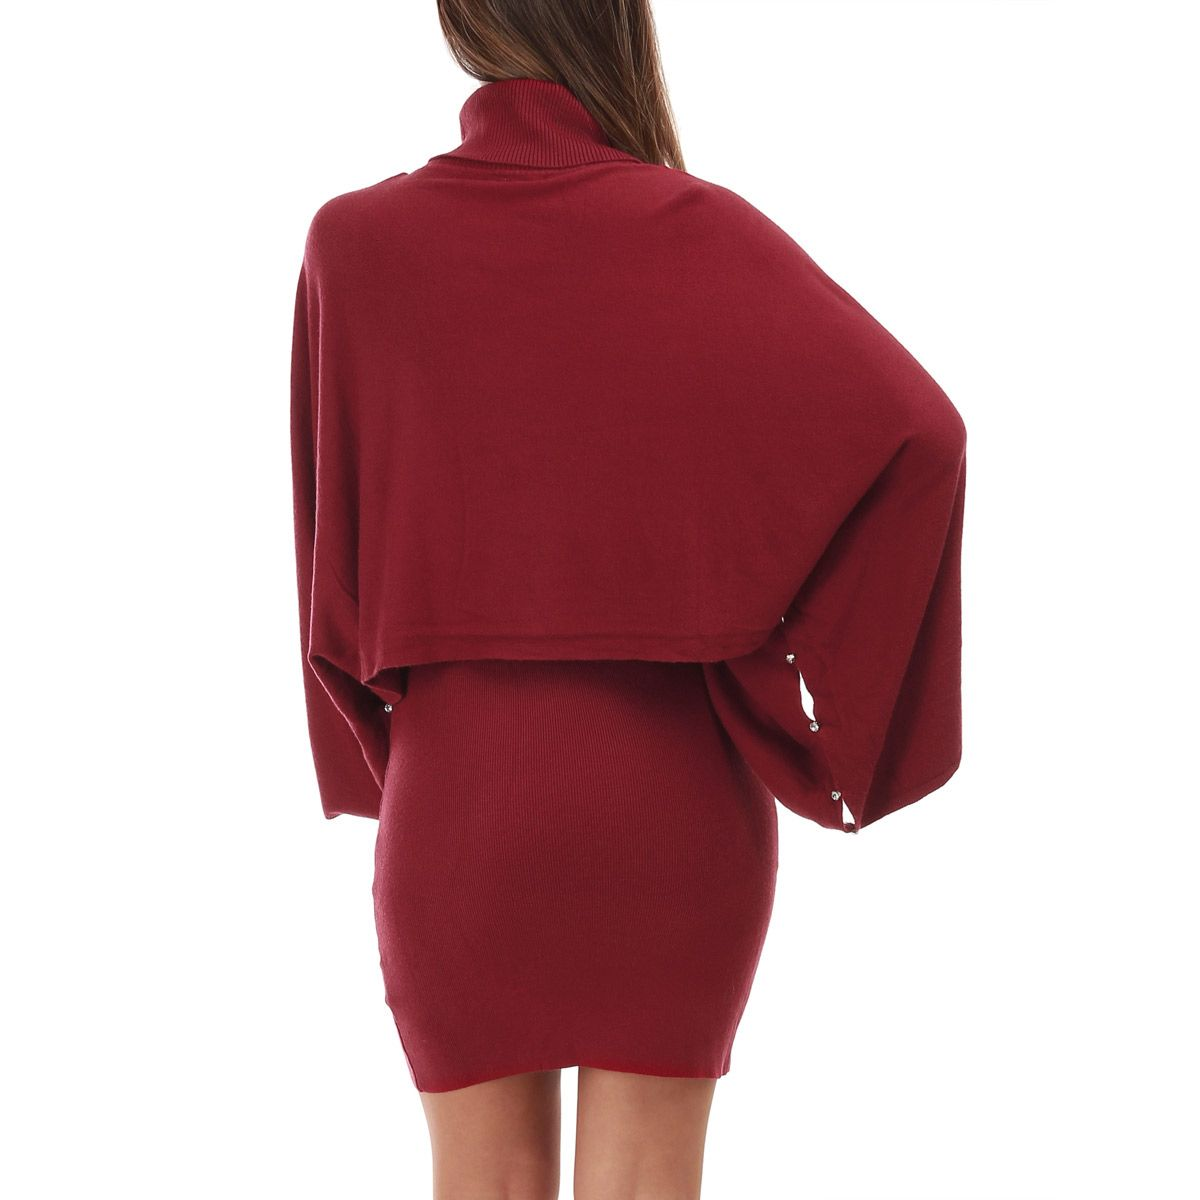 Ensemble robe et pull bordeaux superposables